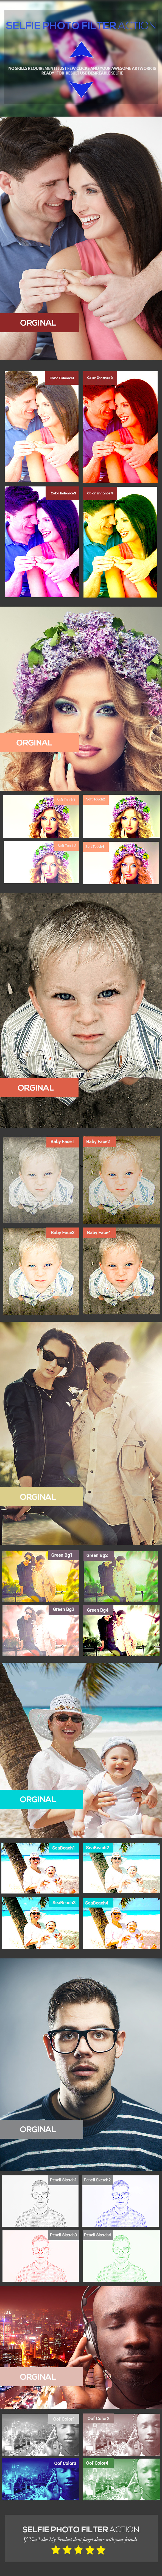 GraphicRiver Selfie Photo-Filter Action 10779641